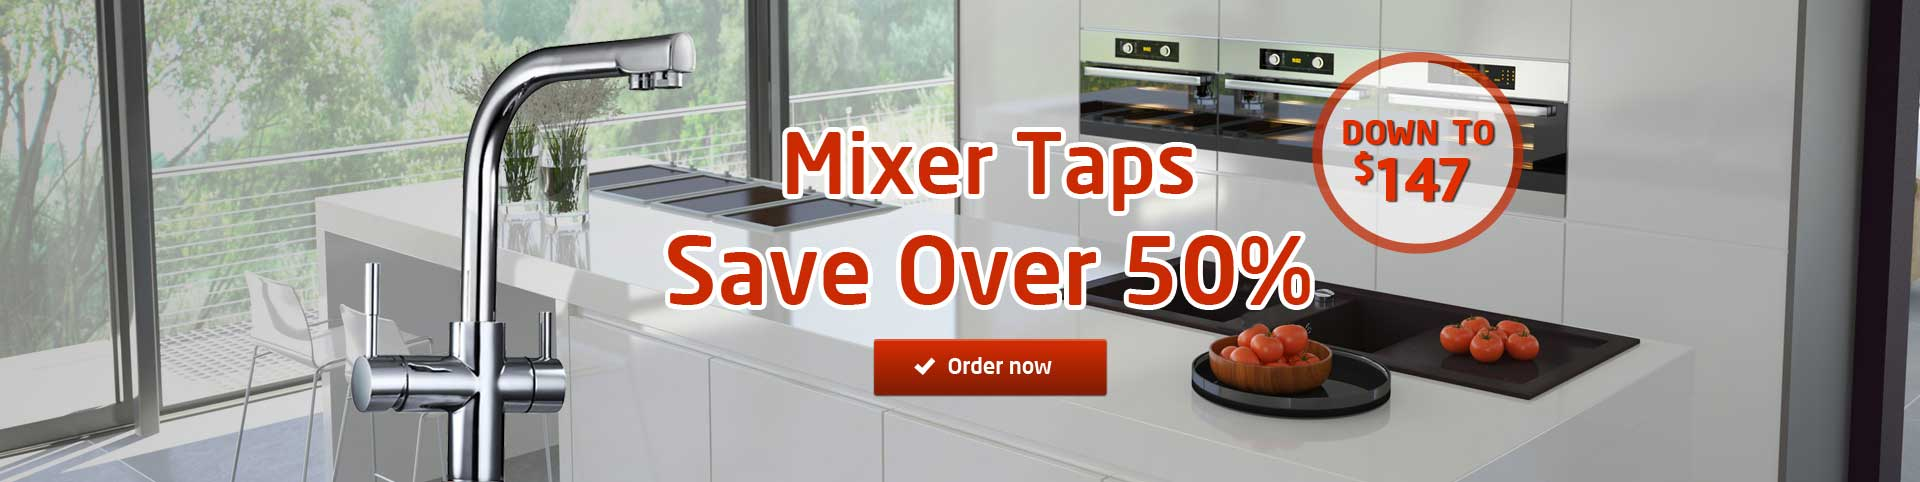 Save over 50% Filter Mixer Tap | Puratap | Water Filters Specialist in Adelaide